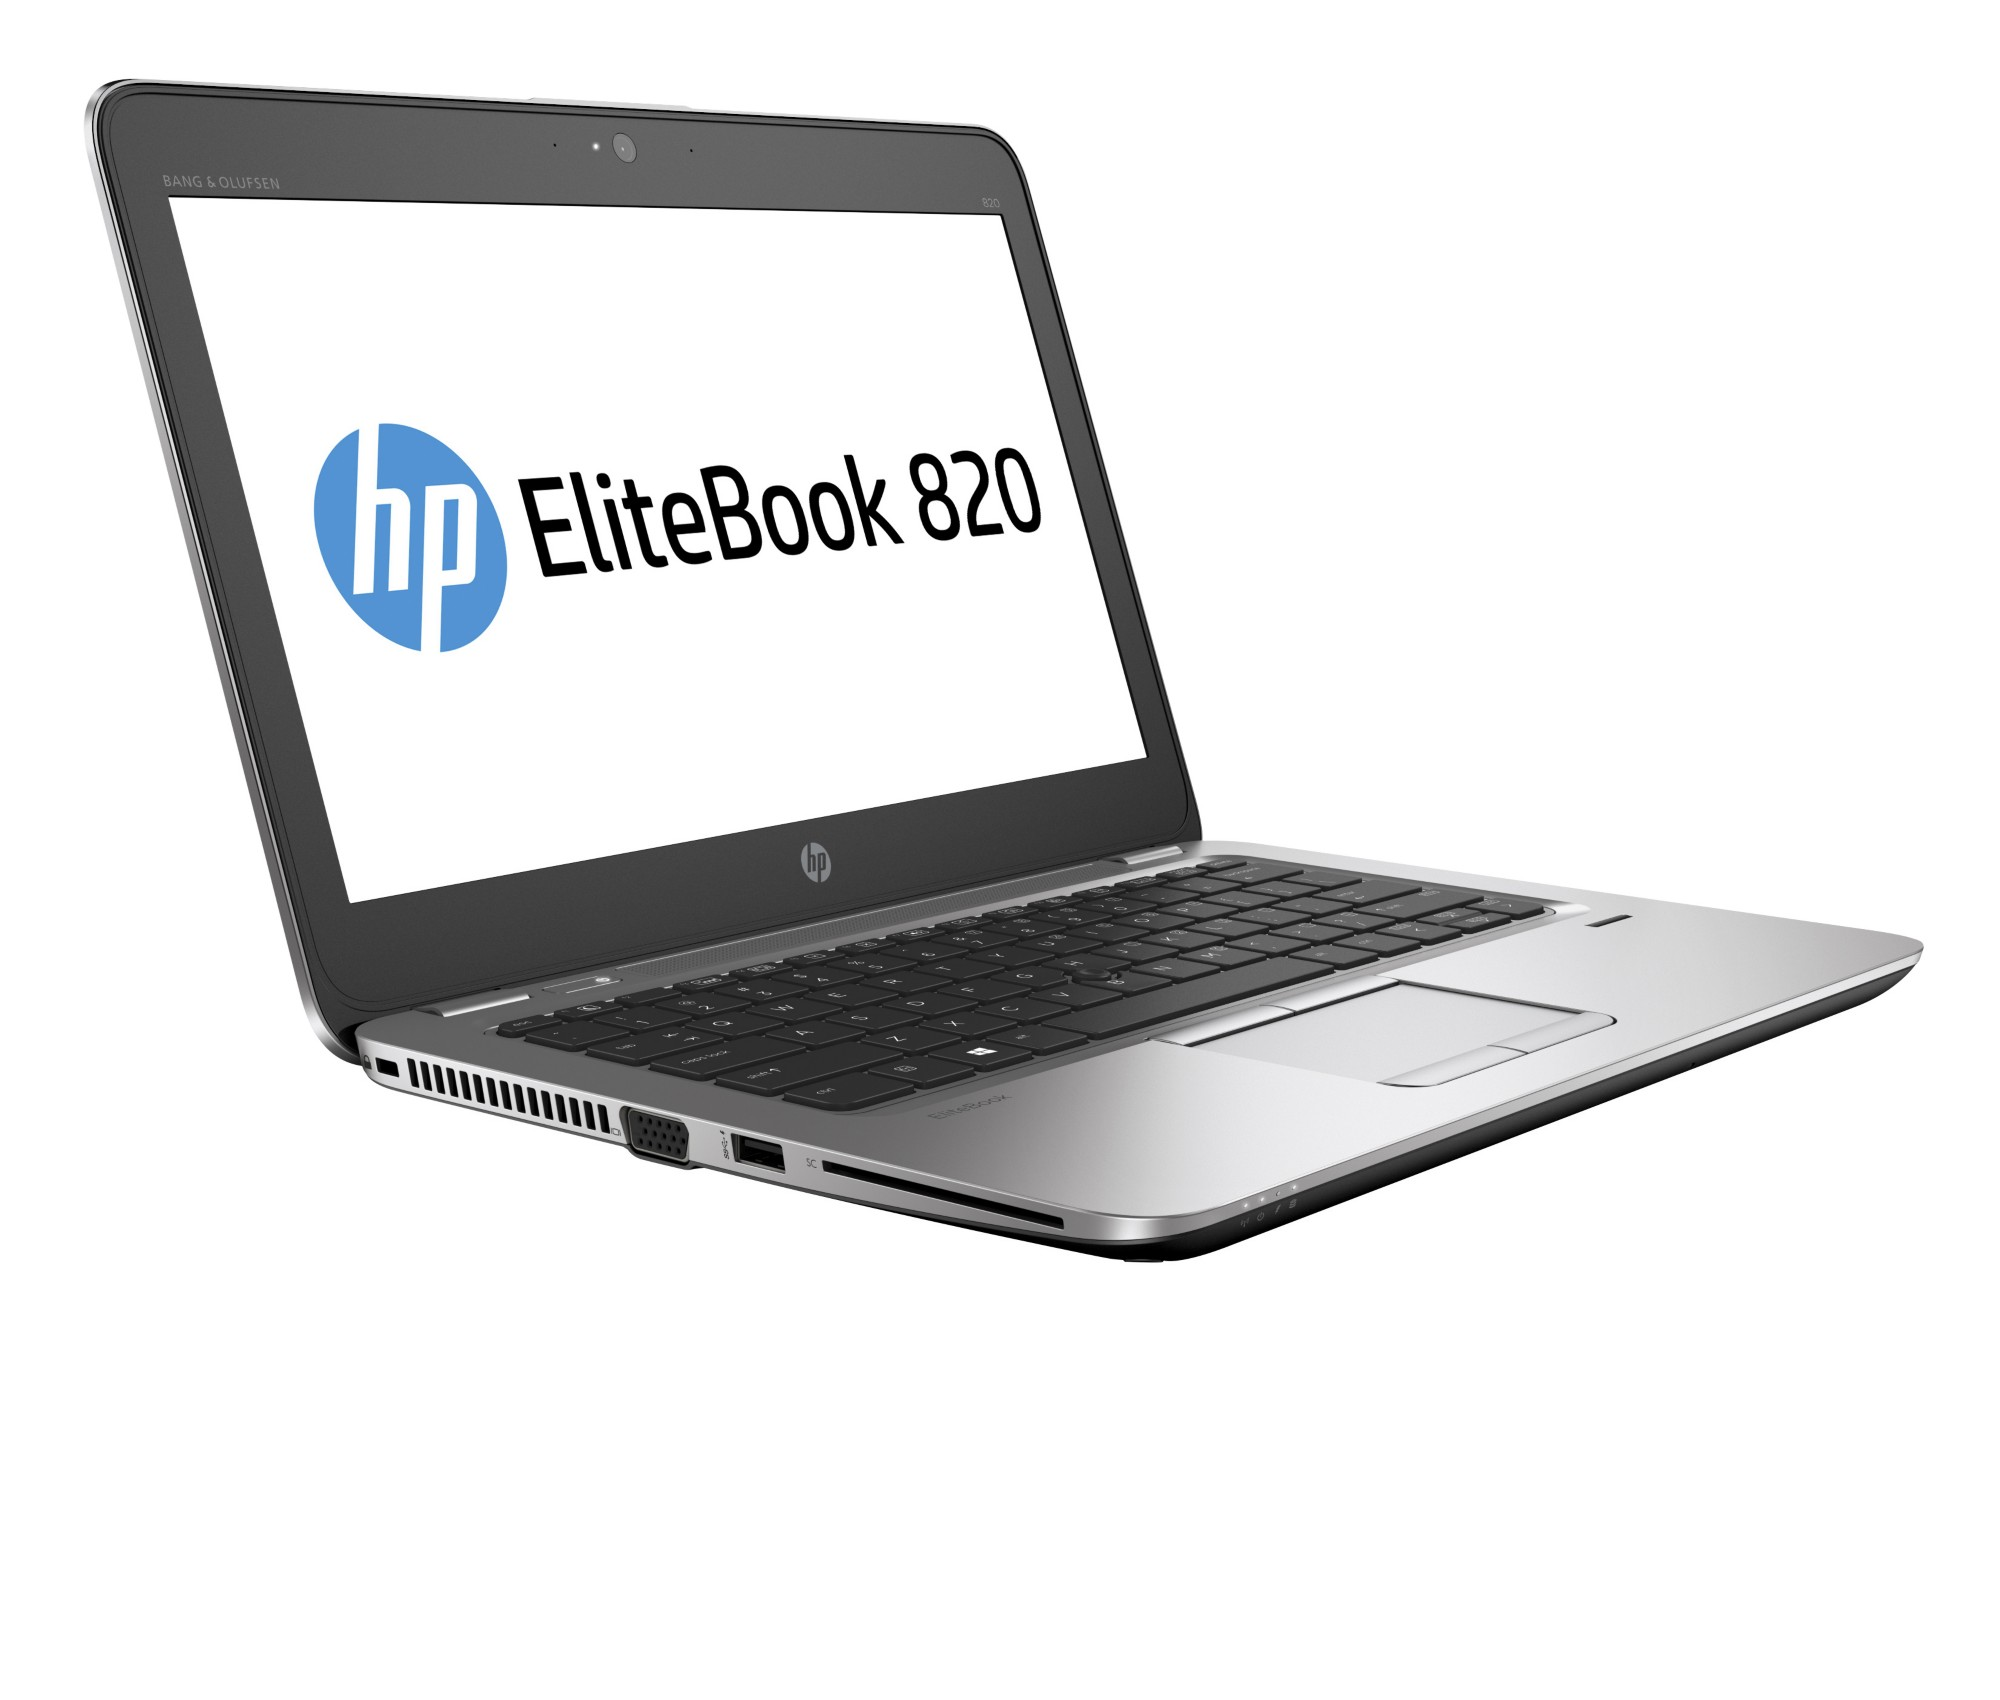 HP EliteBook 820 G3 Notebook PC (ENERGY STAR)